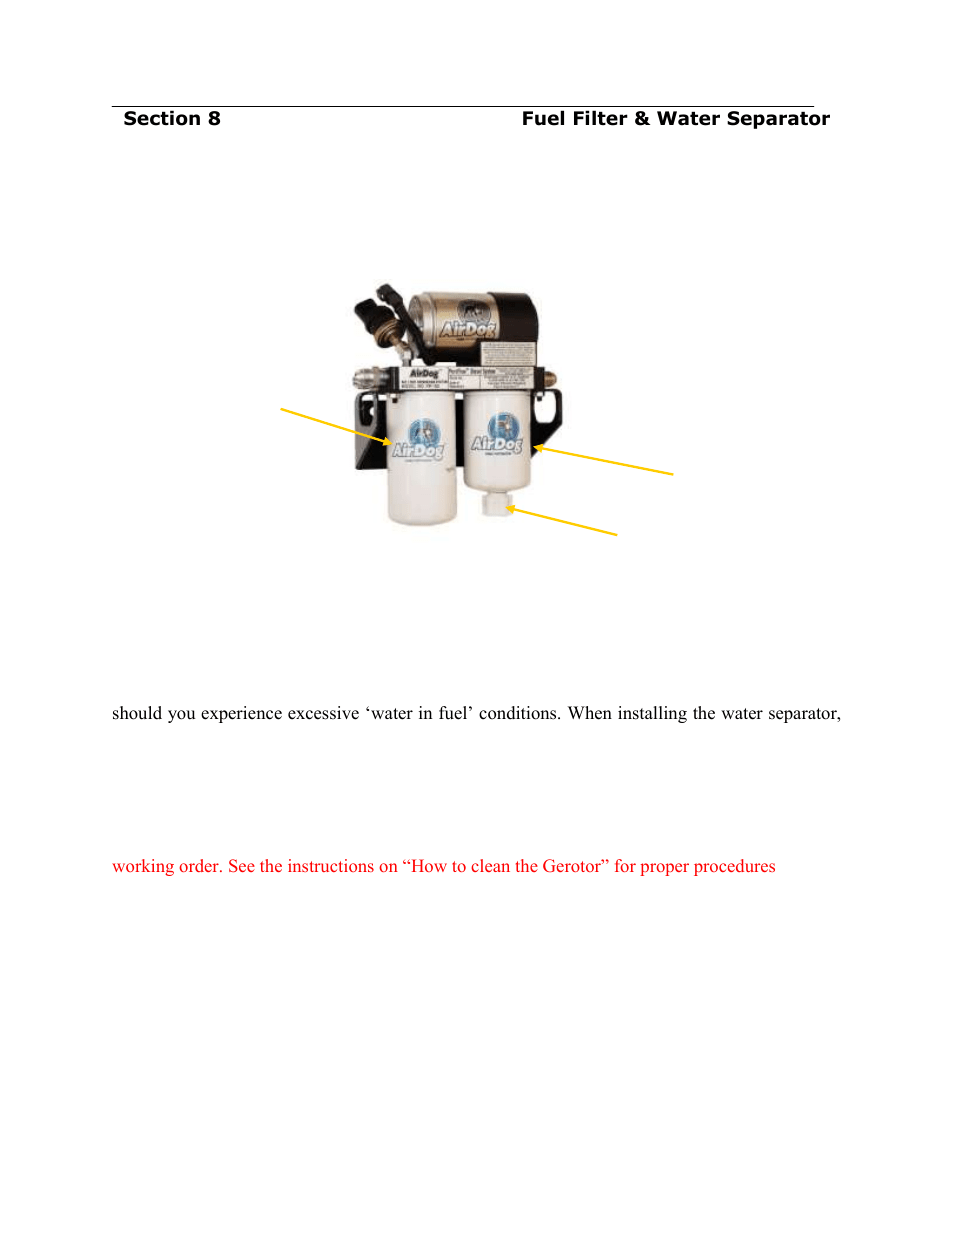 medium resolution of filter service recommendations pureflow airdog df 165 4g gm duramax 2015 user manual page 18 23